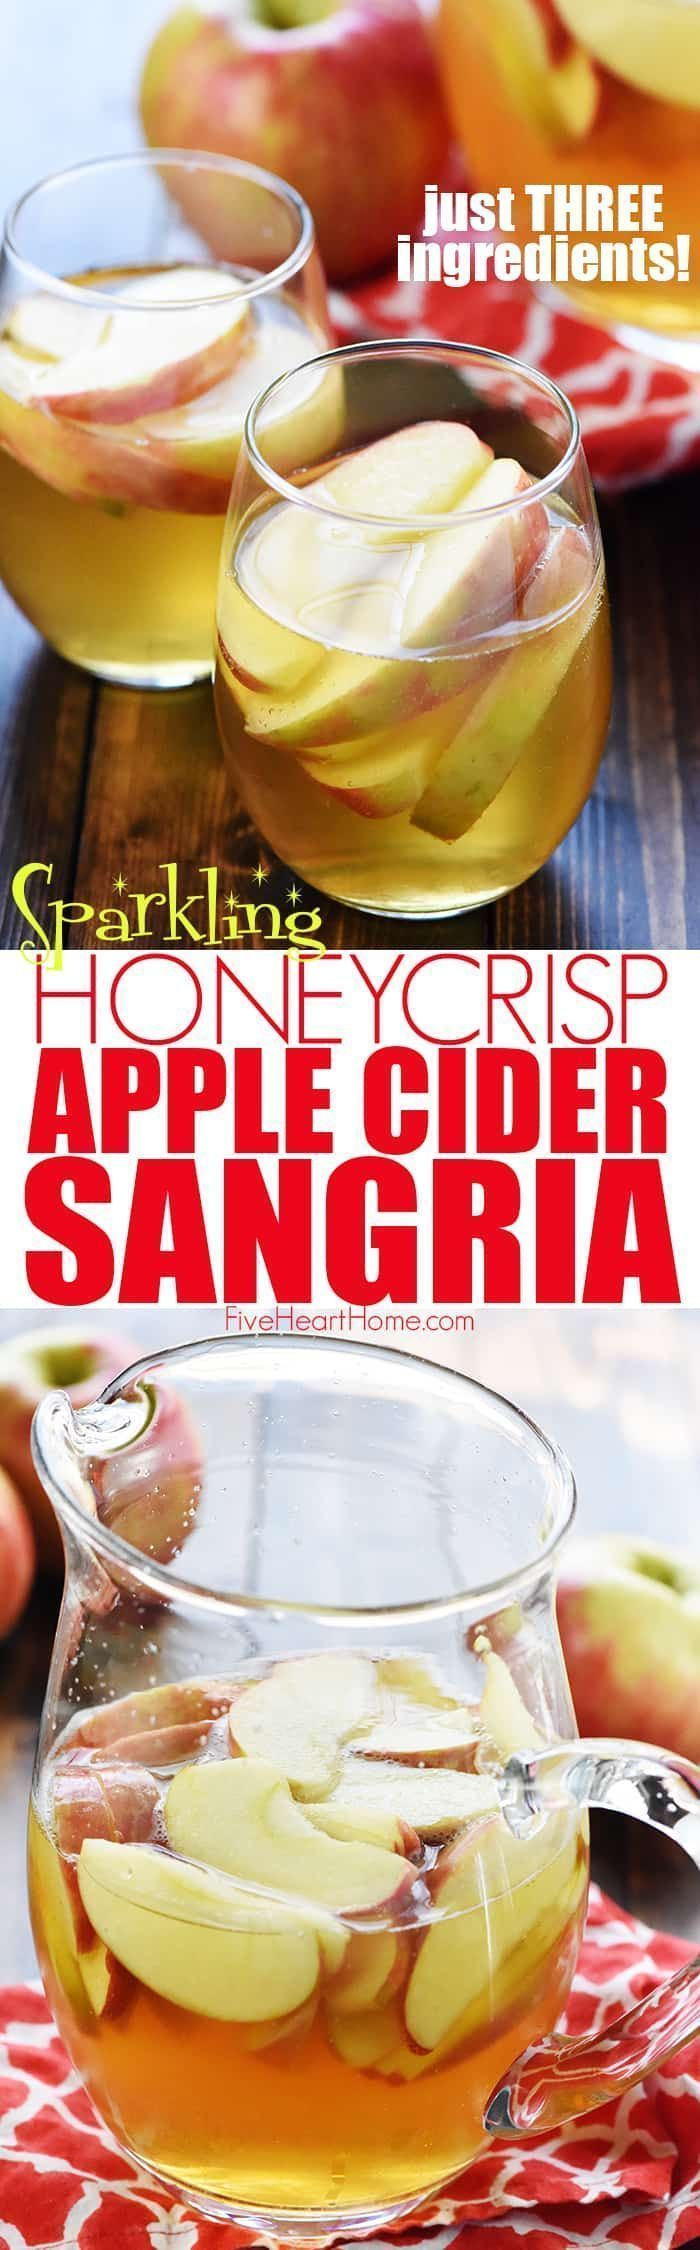 Sparkling Apple Cider Sangria ~ a festive fall cocktail recipe with just three i... - coctails - #Apple #Cider #Cocktail #coctails #FALL #festive #RECIPE #Sangria #Sparkling #applecidersangriarecipe Sparkling Apple Cider Sangria ~ a festive fall cocktail recipe with just three i... - coctails - #Apple #Cider #Cocktail #coctails #FALL #festive #RECIPE #Sangria #Sparkling #applecidersangriarecipe Sparkling Apple Cider Sangria ~ a festive fall cocktail recipe with just three i... - coctails - #Appl #applecidersangriarecipe